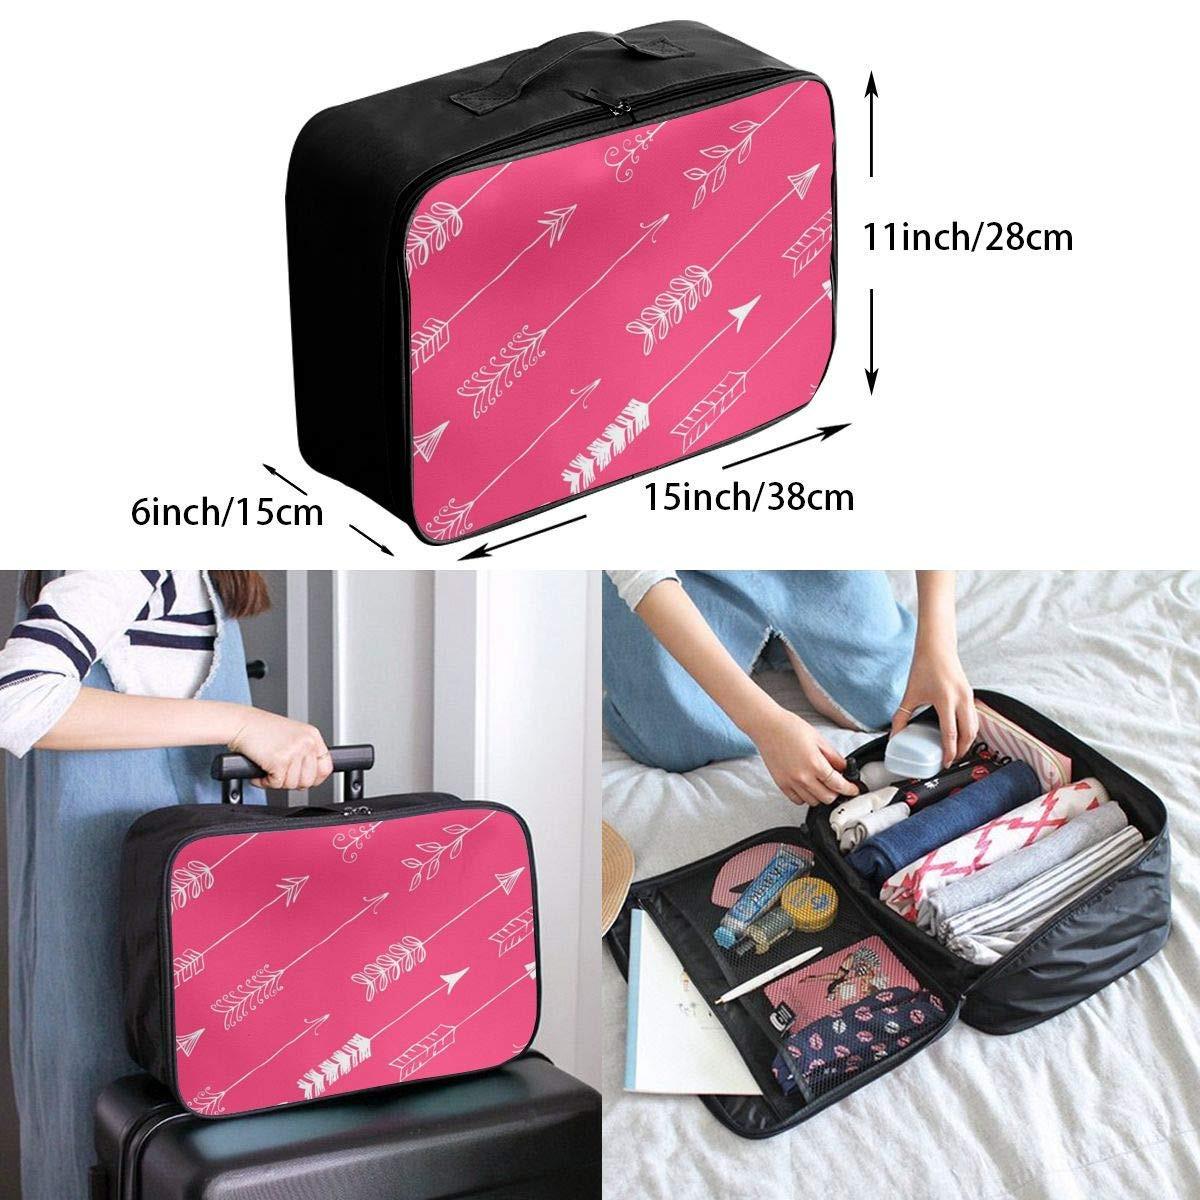 JTRVW Luggage Bags for Travel Multifunctional Fashion Travel Duffel Storage Bag Water Resistant Pink Arrow